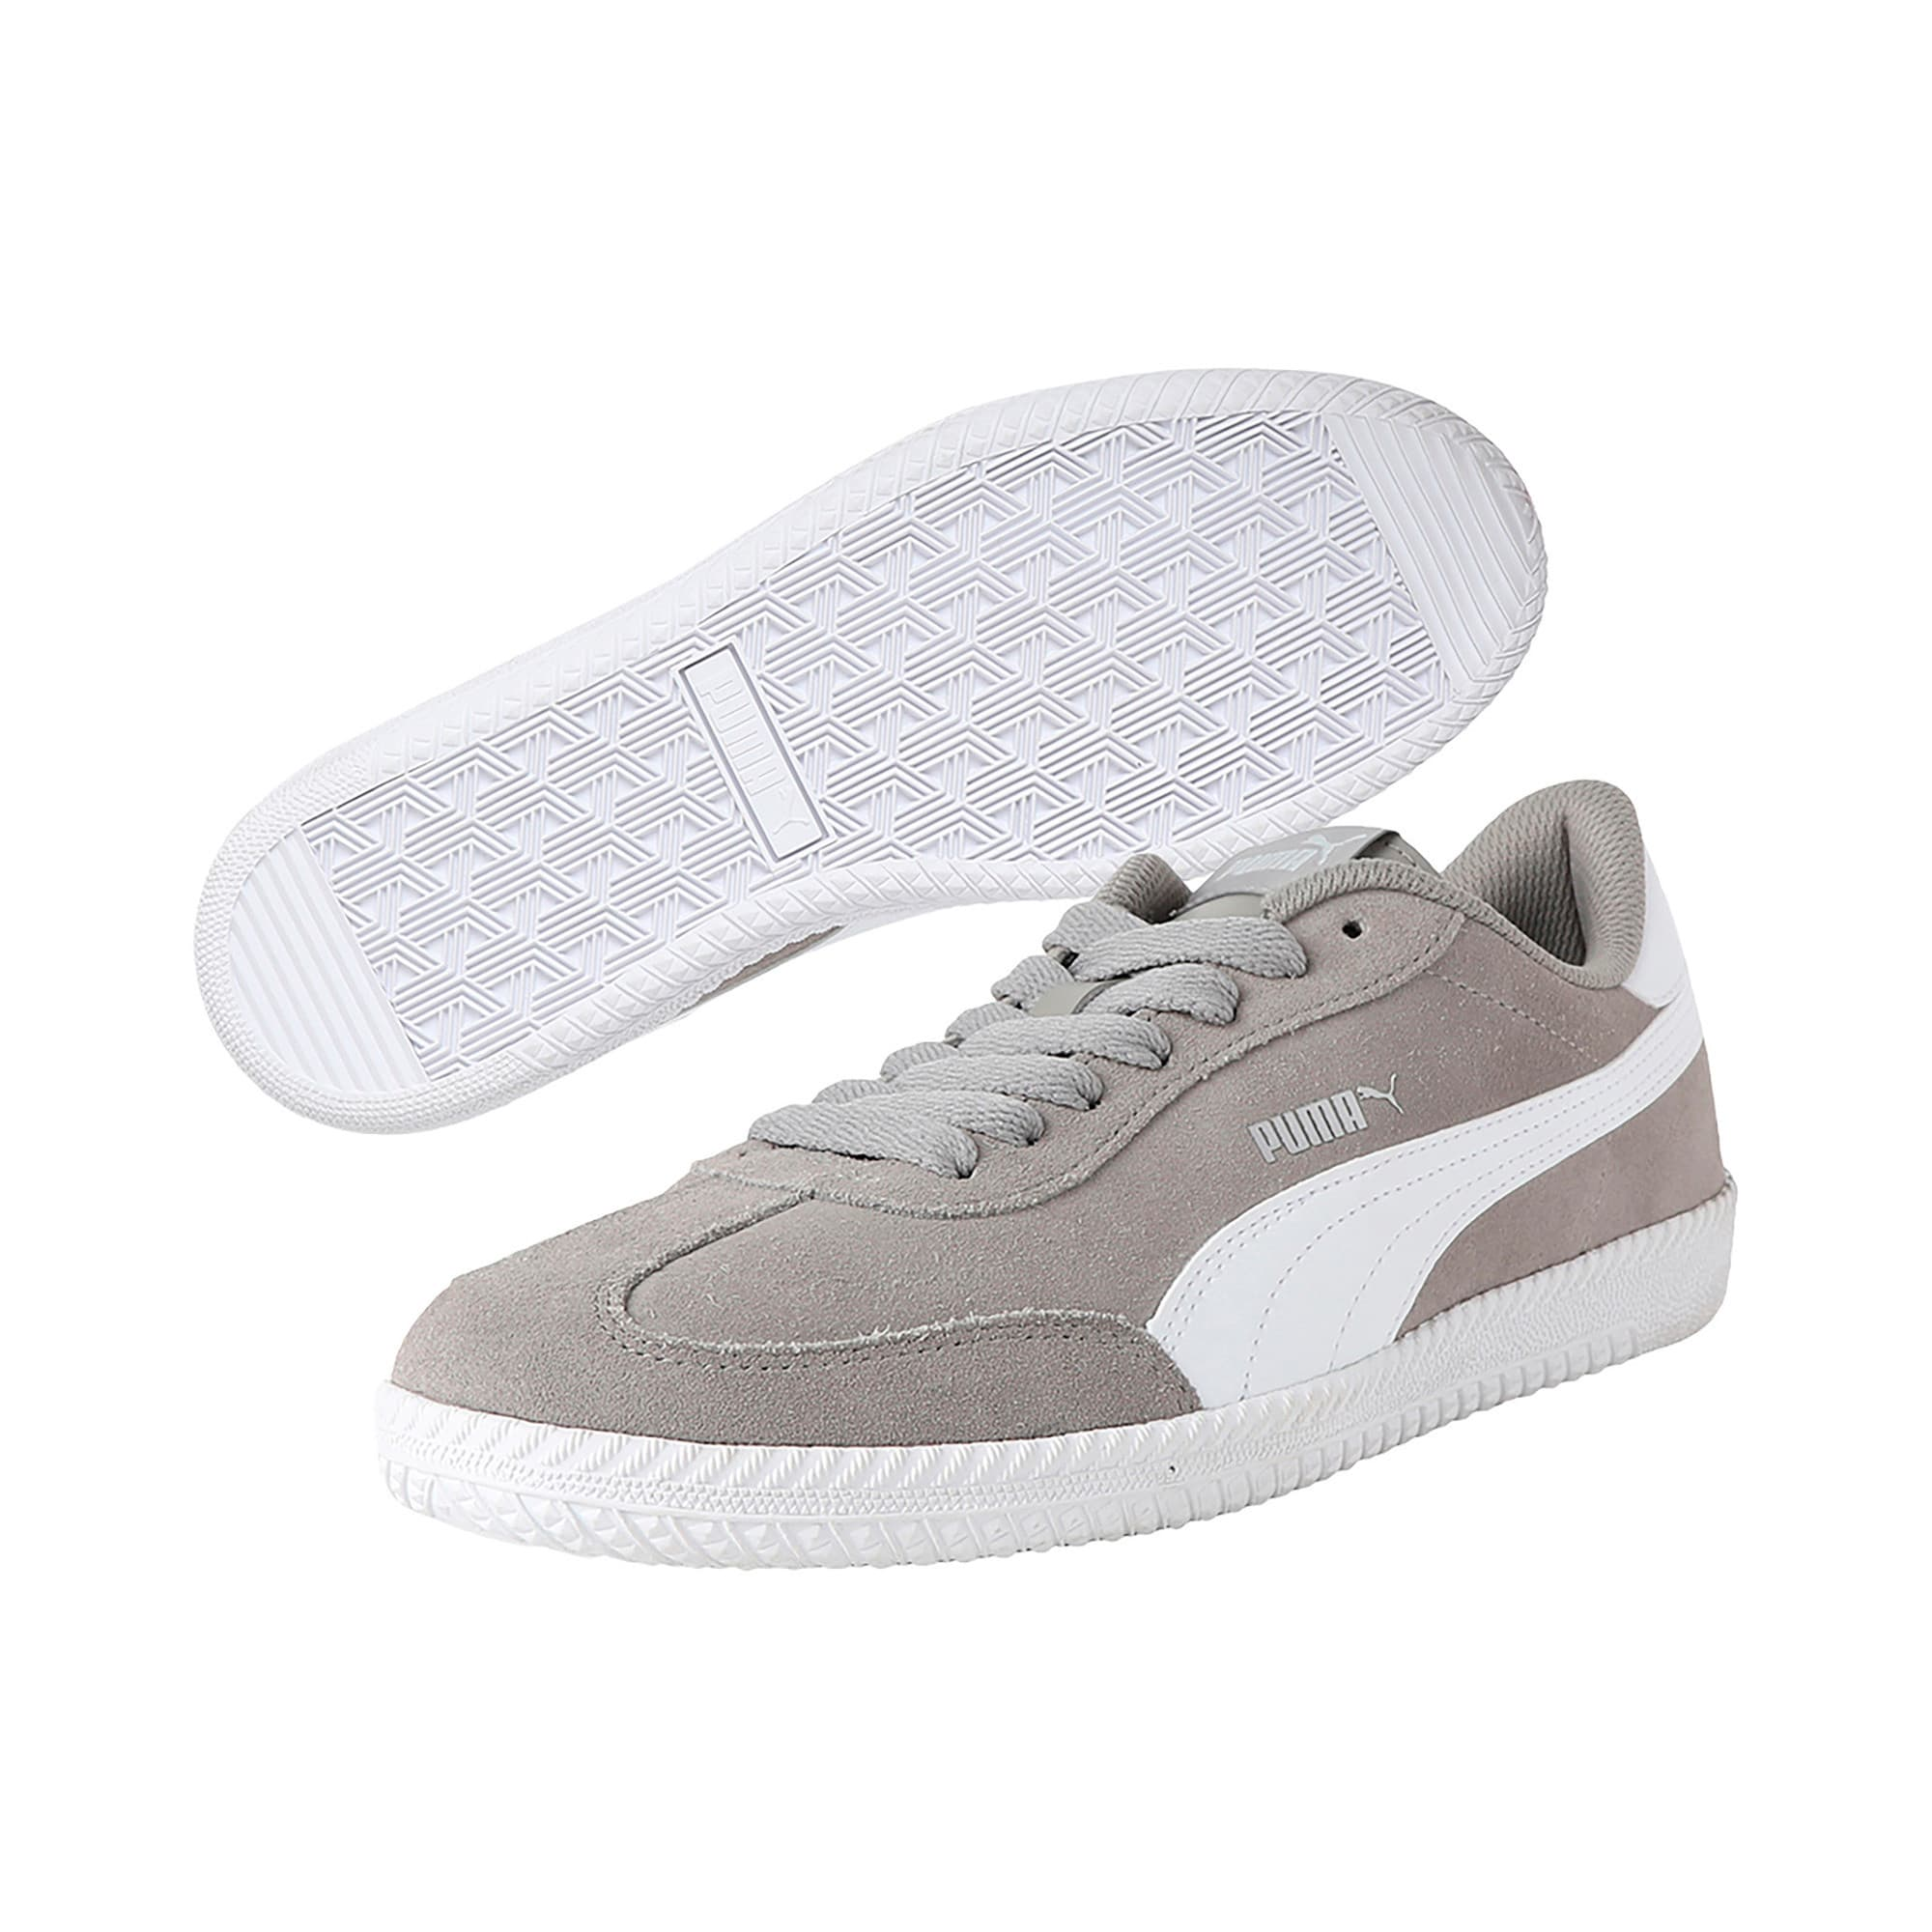 Thumbnail 2 of Astro Cup Trainers, Elephant Skin-Puma White, medium-IND